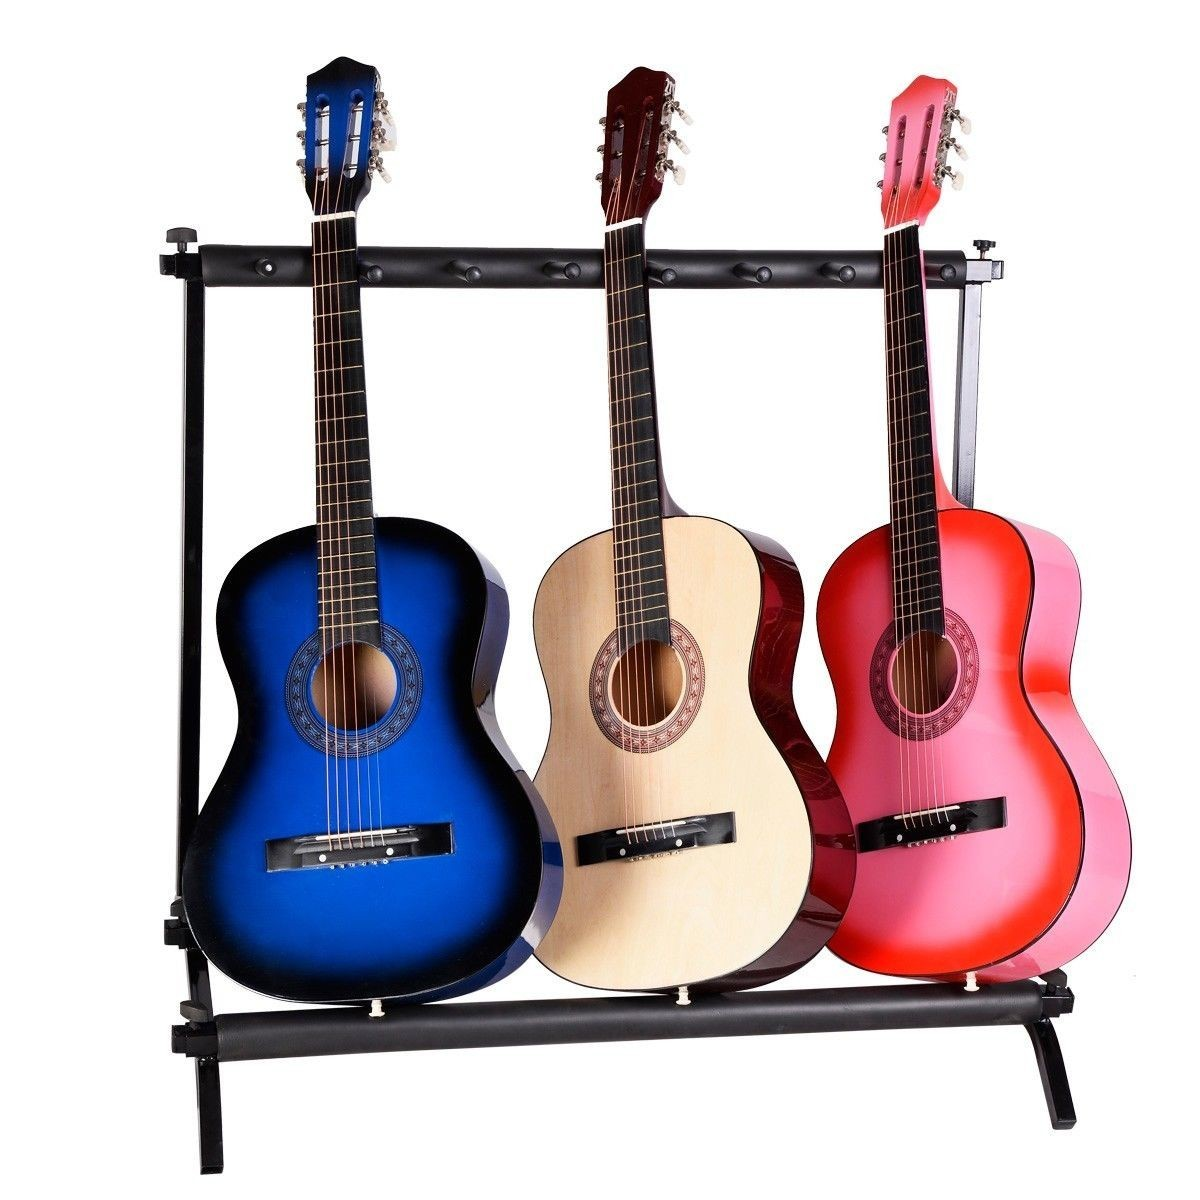 7 Guitar Electric Acoustic Bass Rack Holder Storage Organizer Folding Stand New by Apontus